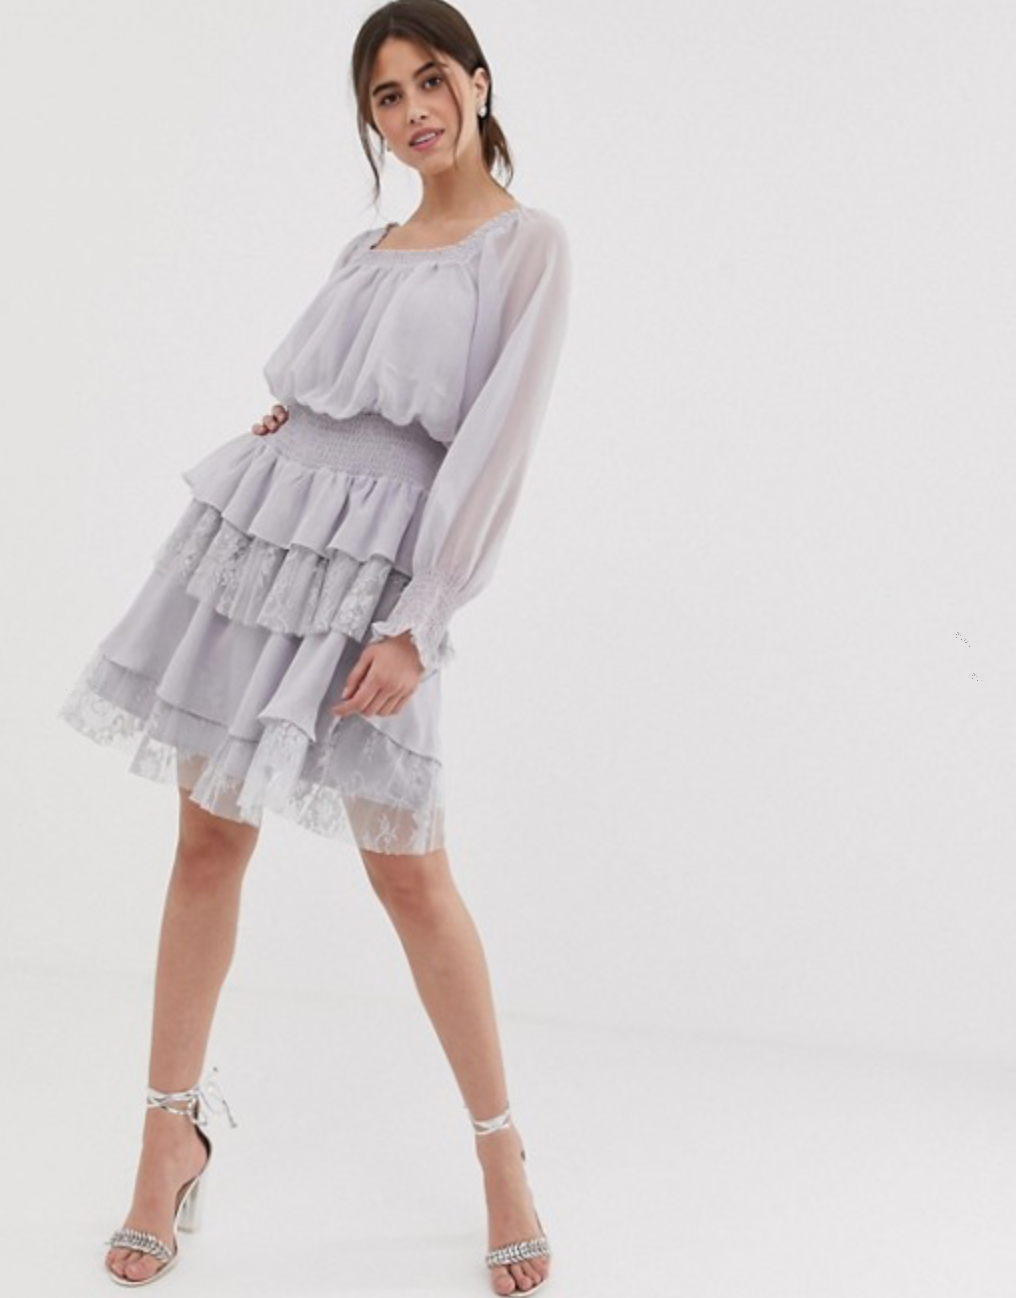 True Decadence Premium Dress with Ruffle and Lace Tiered Skirt By ASOS